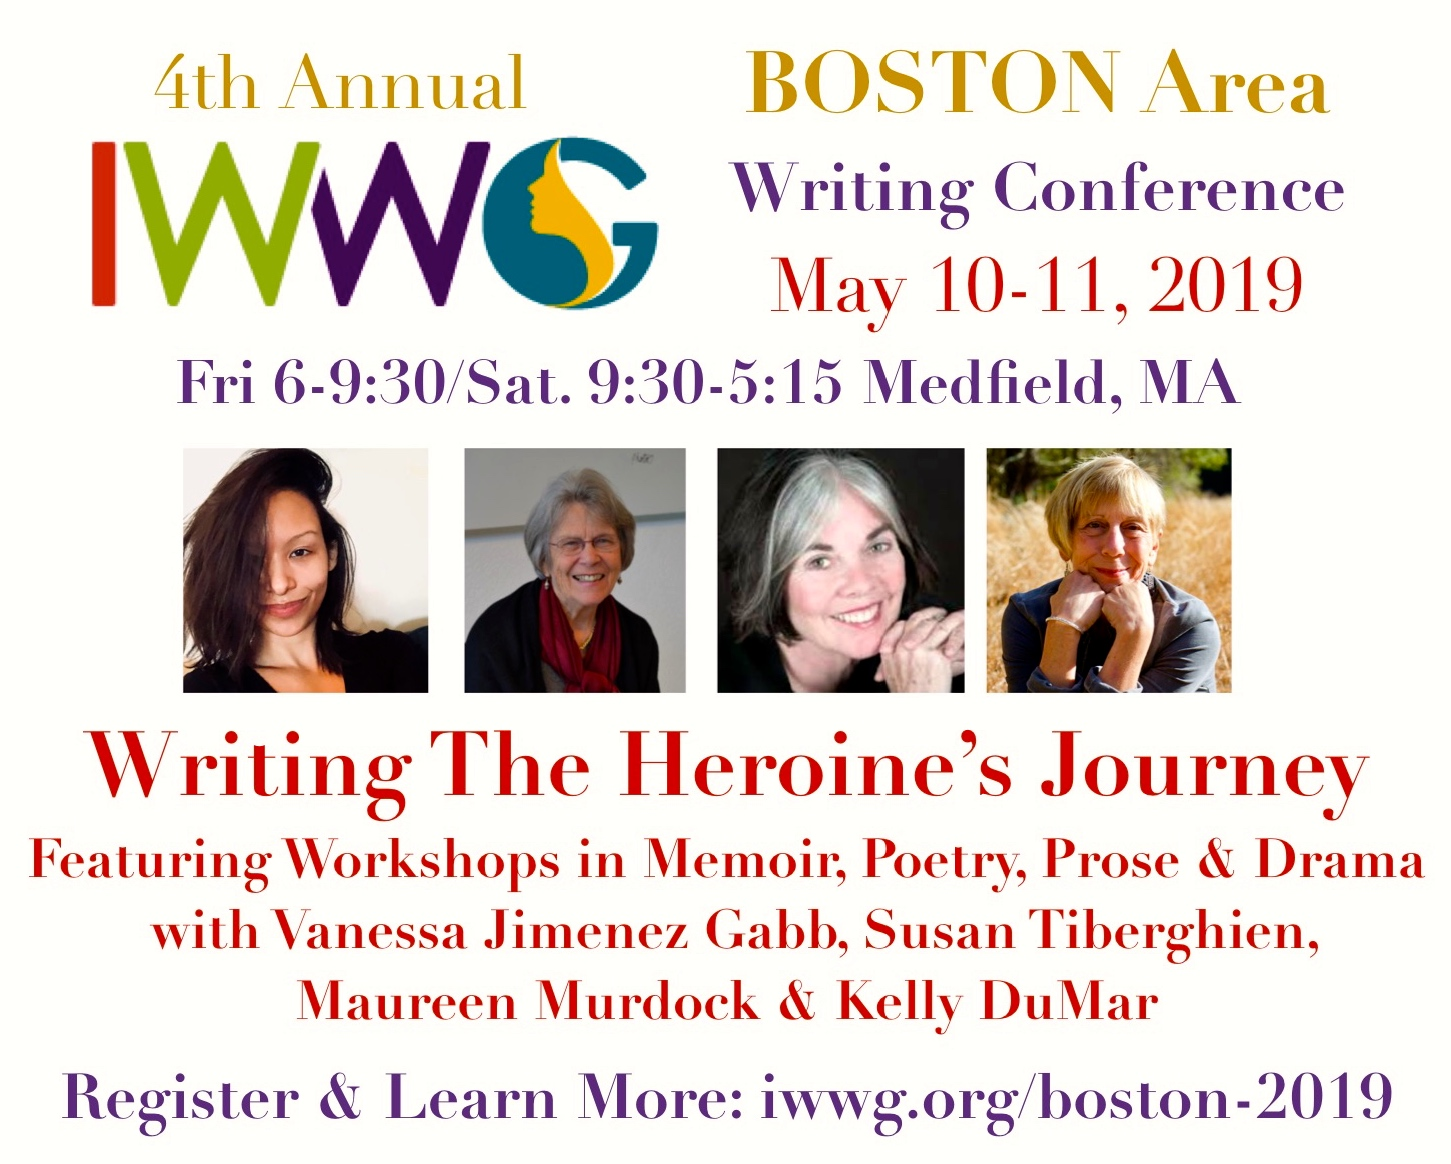 Writing The Heroine's Journey with Susan Tiberghien, Maureen Murdock, Vanessa Gabb, & Kelly DuMar